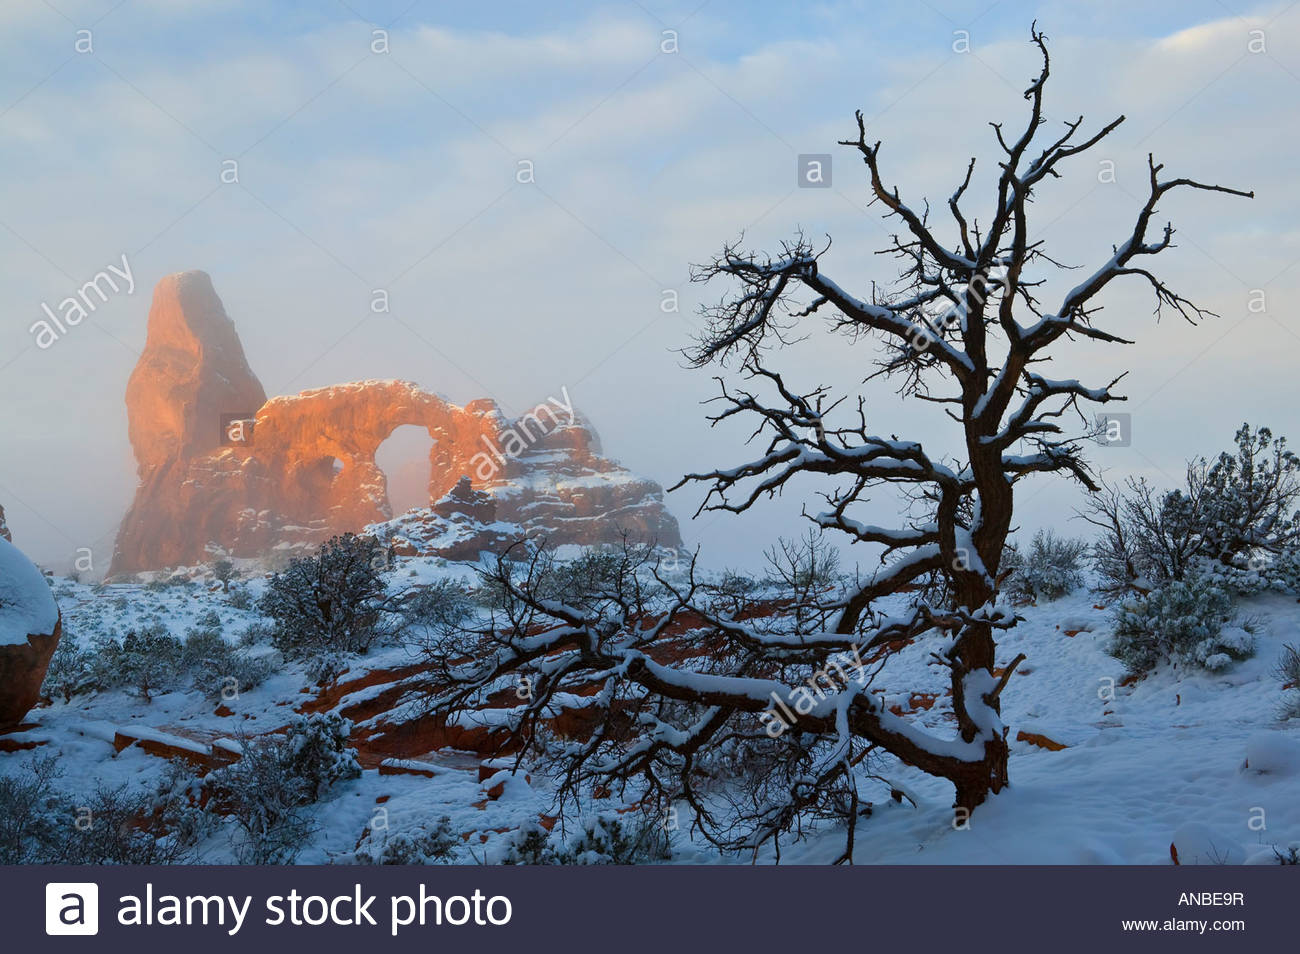 Turret Arch, shrouded in fog, is lit by the rising sun after a night of fresh snowfall in Arches National Park near - Stock Image